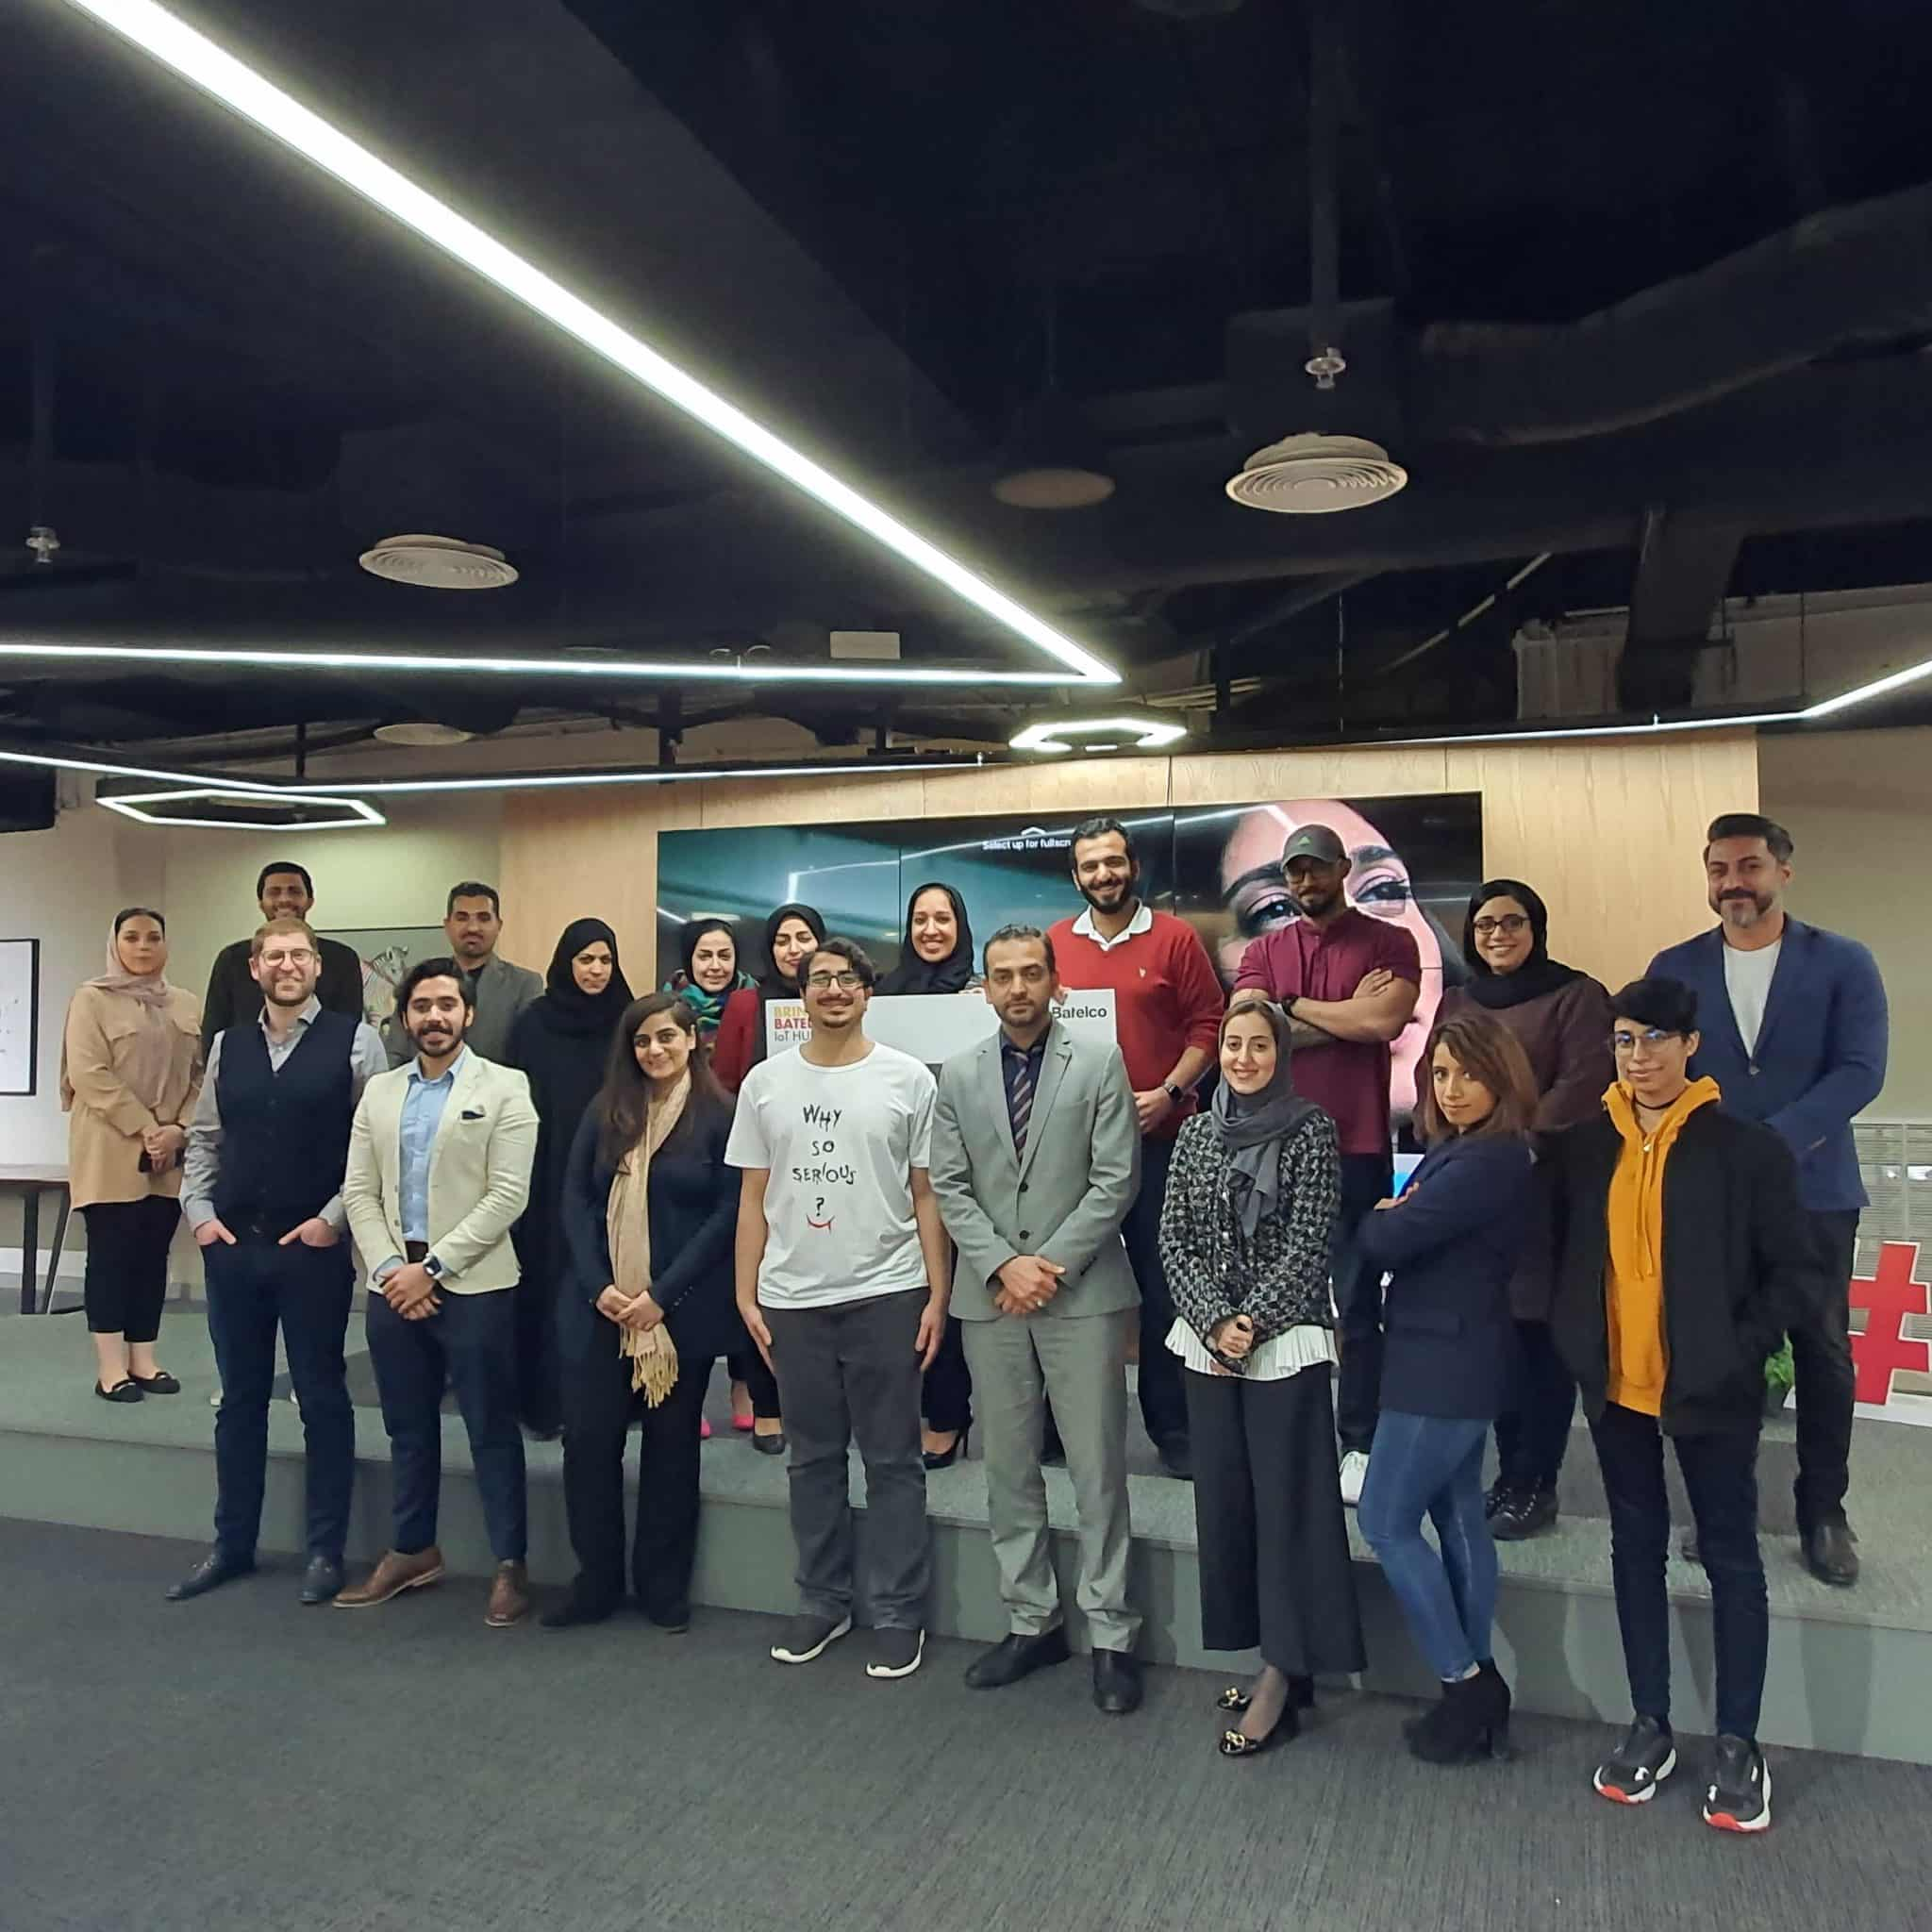 Batelco FinTech Hackathon ends in a tie after fierce competition